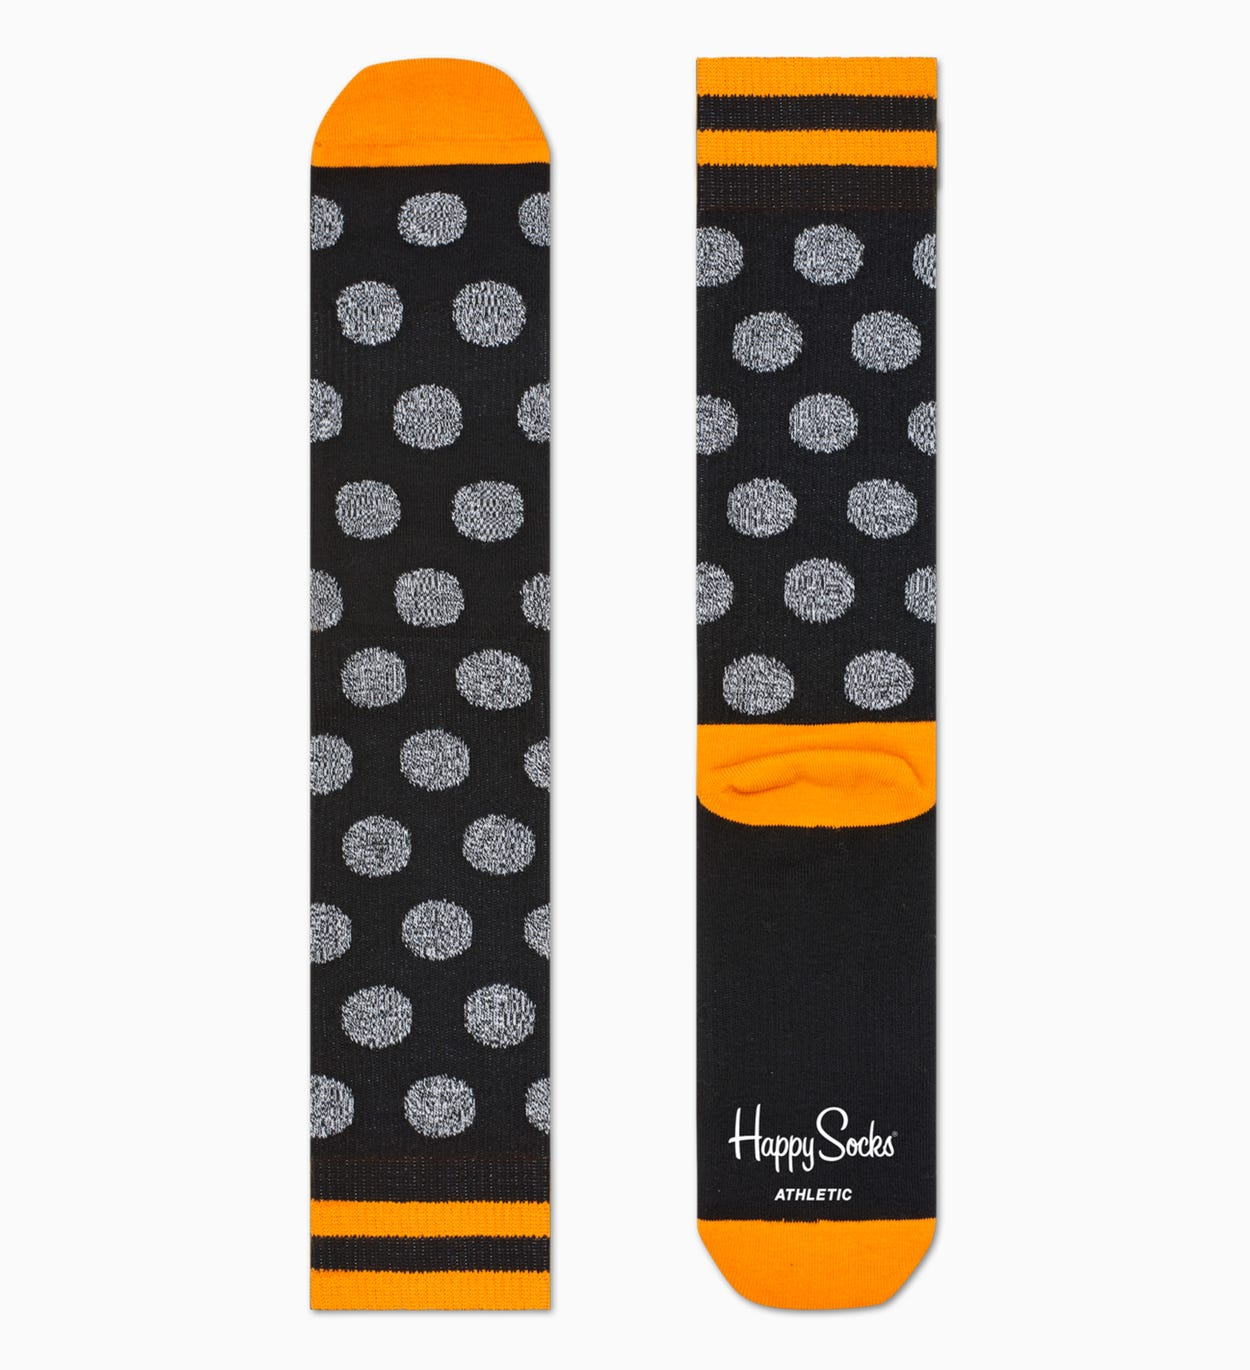 Black sport socks: Big Dot - ATHLETIC | Happy Socks